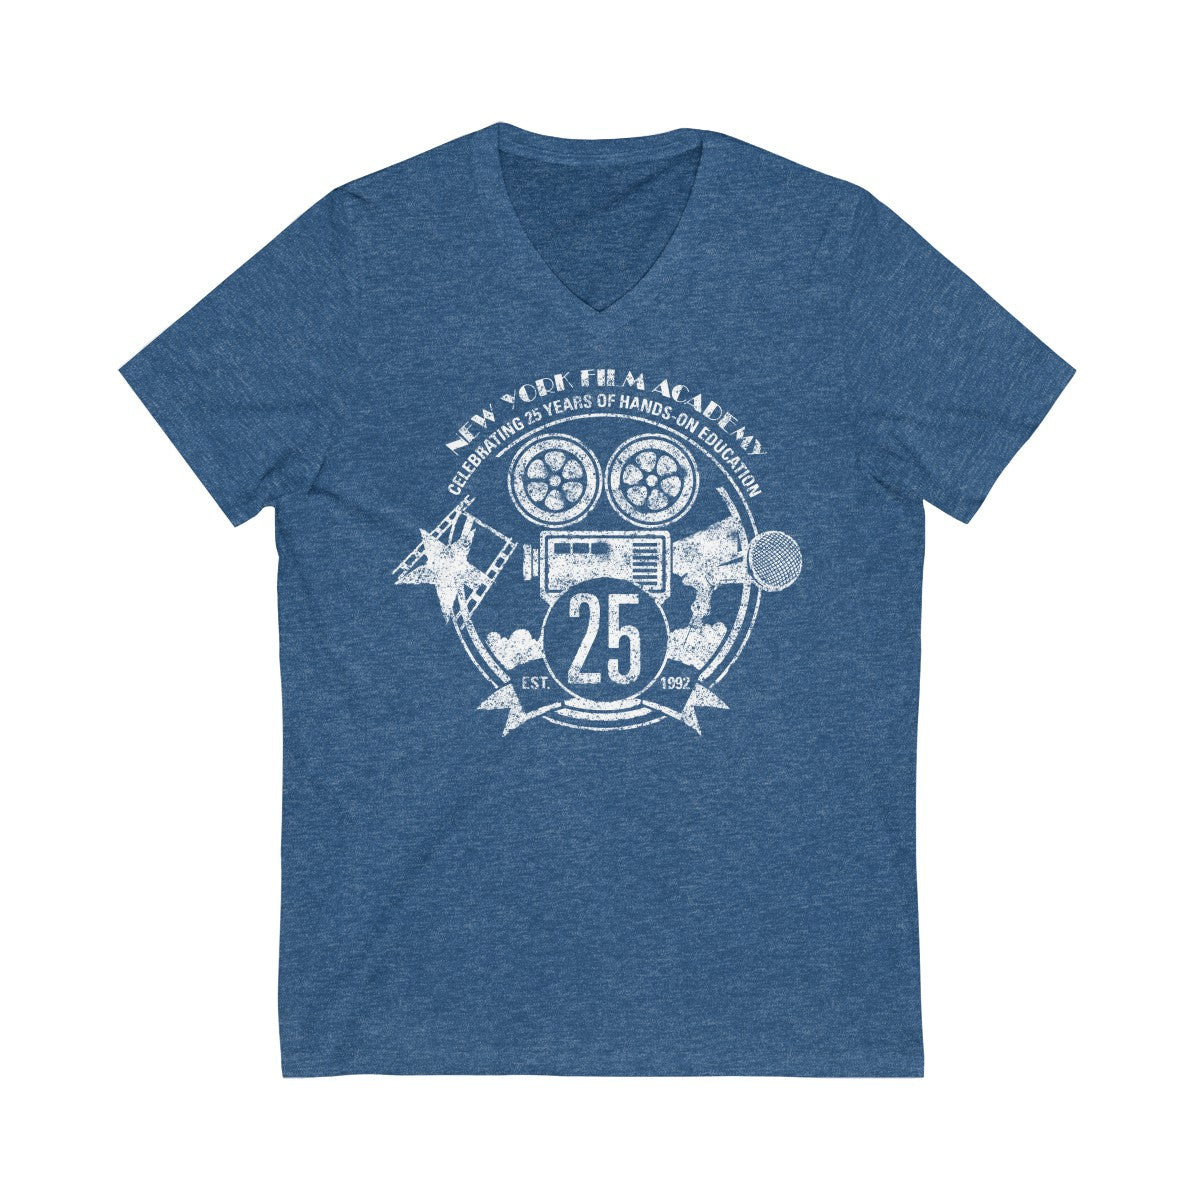 Limited Edition 25th Year NYFA V-Neck T-Shirt - Vintage Heather Blue & Distressed White Logo